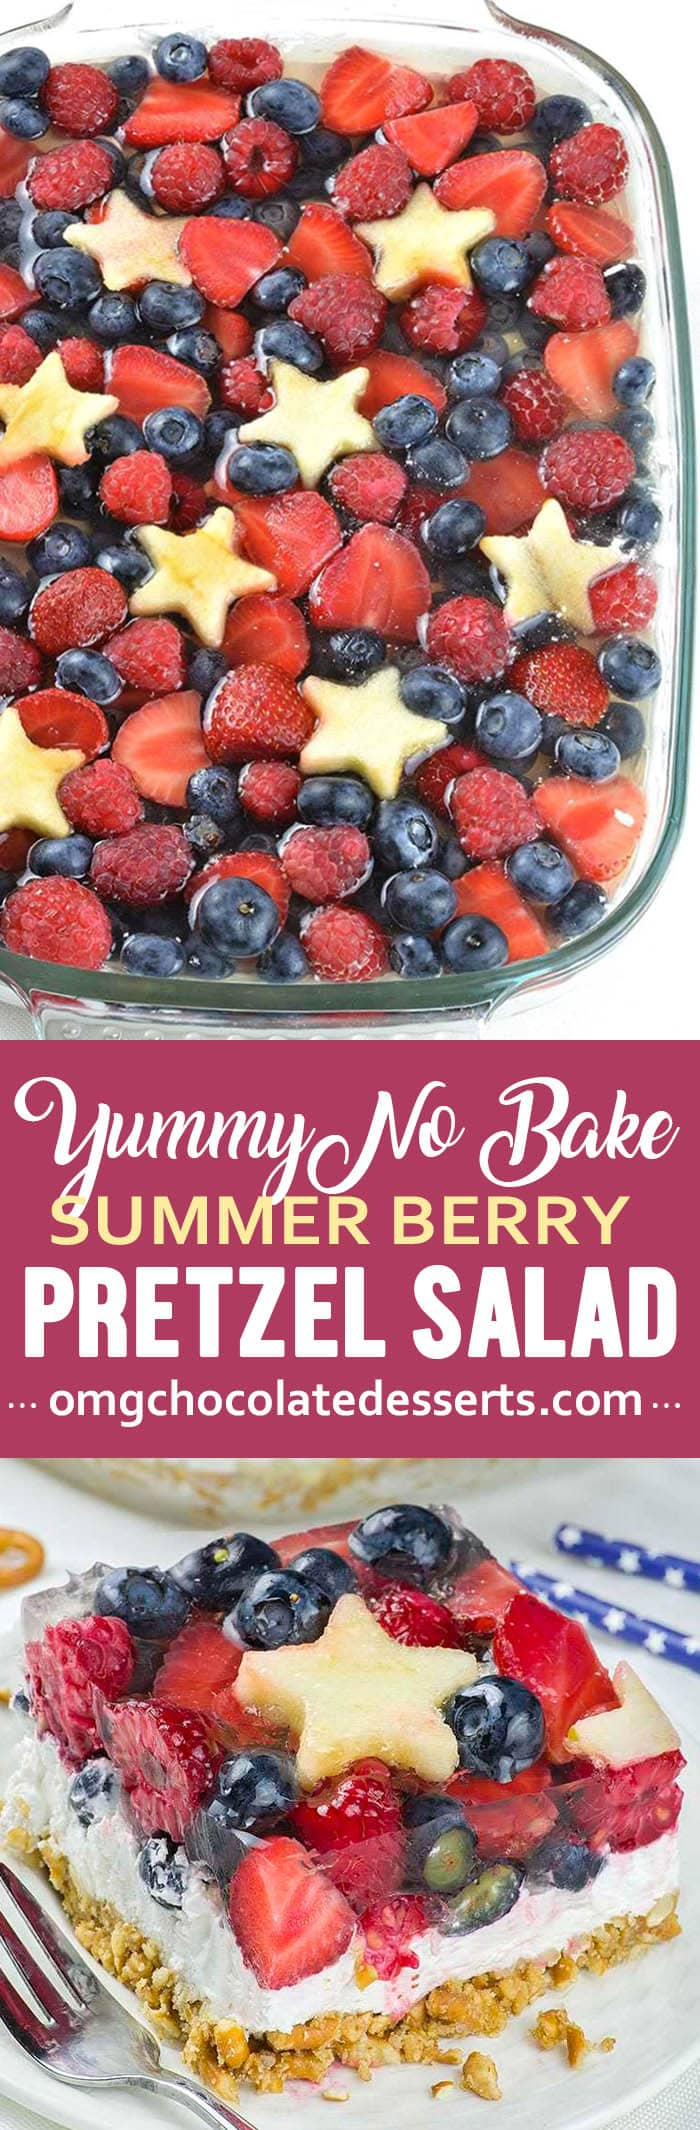 Crunchy pretzels and a creamy filling are topped with piles of strawberries and blueberries making this Berry Pretzel Salad Dessert our favorite dessert for summer!